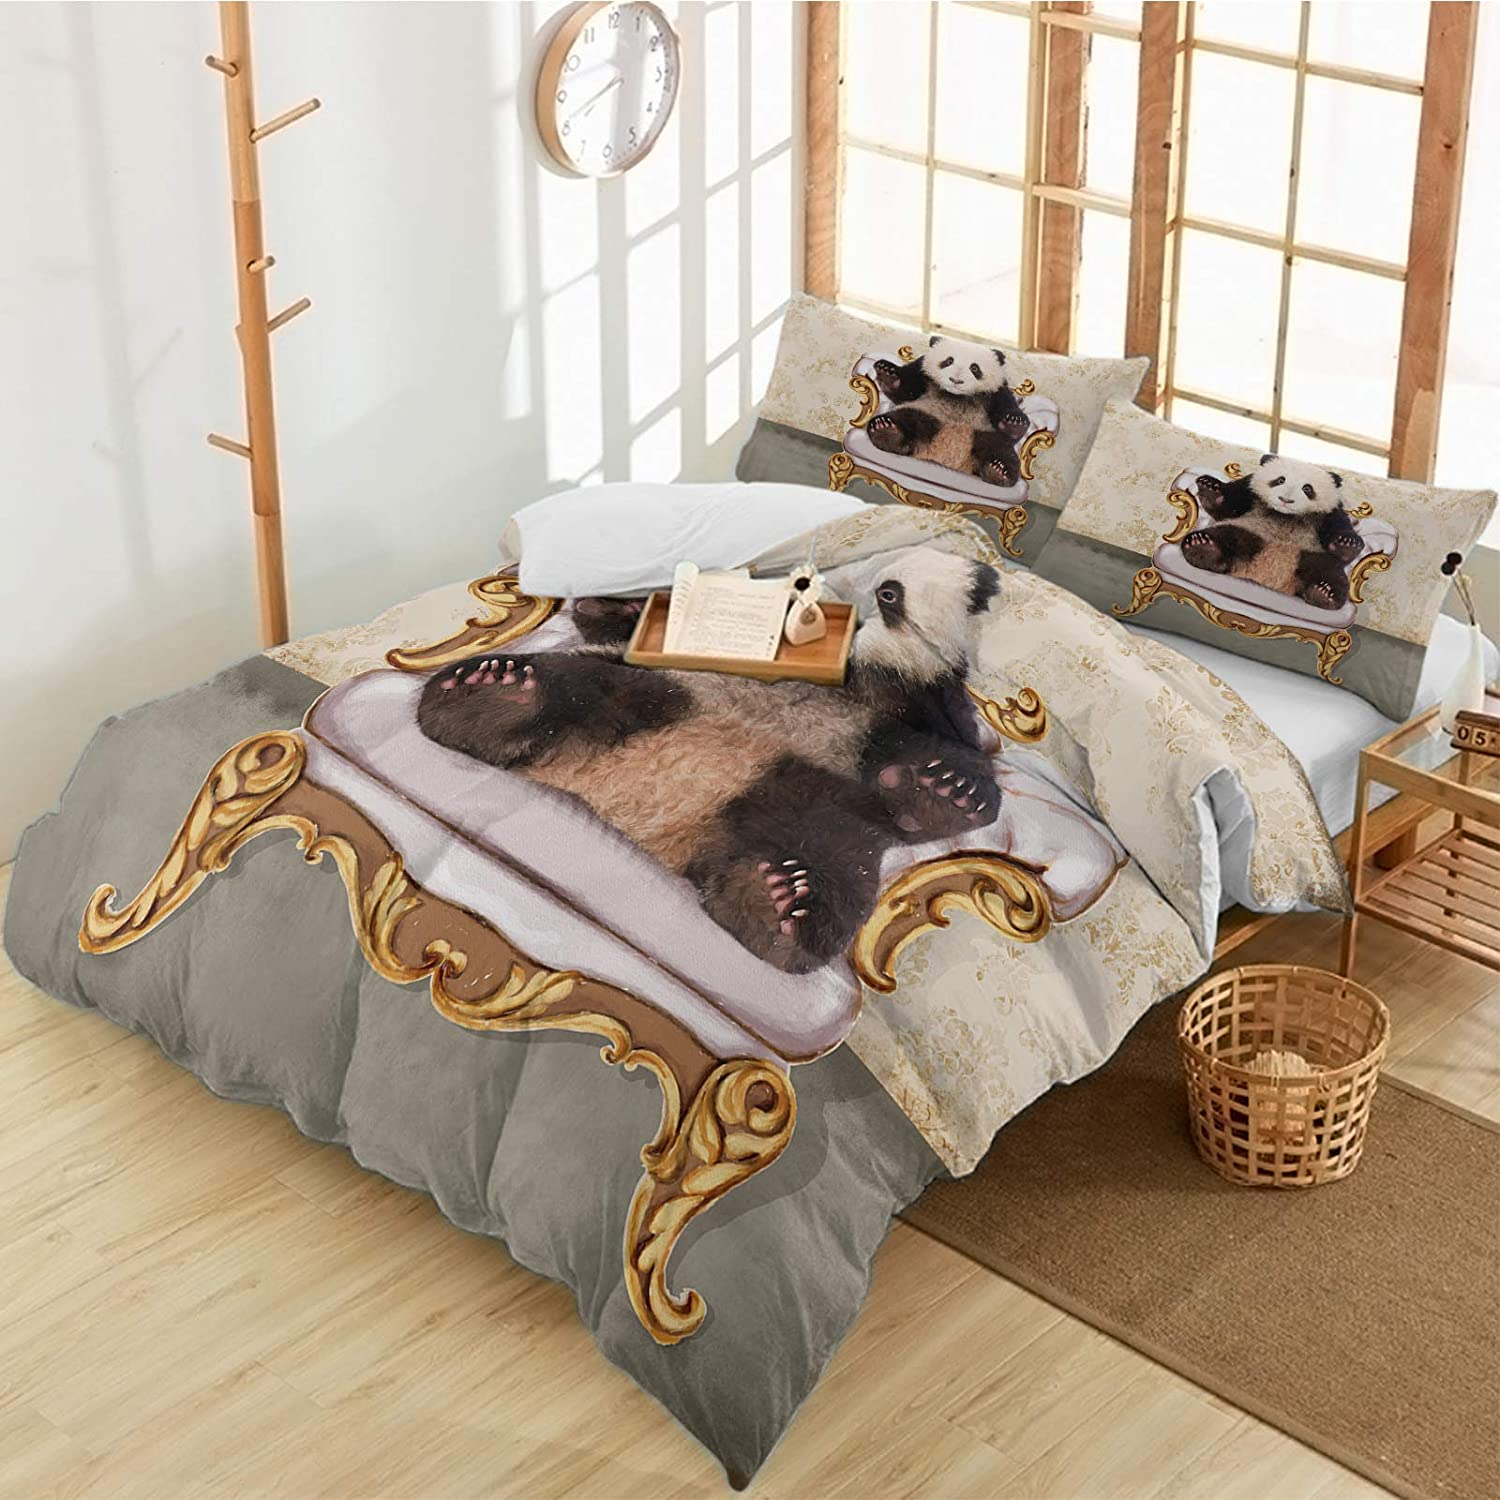 Long-awaited Queener Home Duvet Cover Set Panda Palace Challenge the lowest price of Japan on Sofa Sitting The B